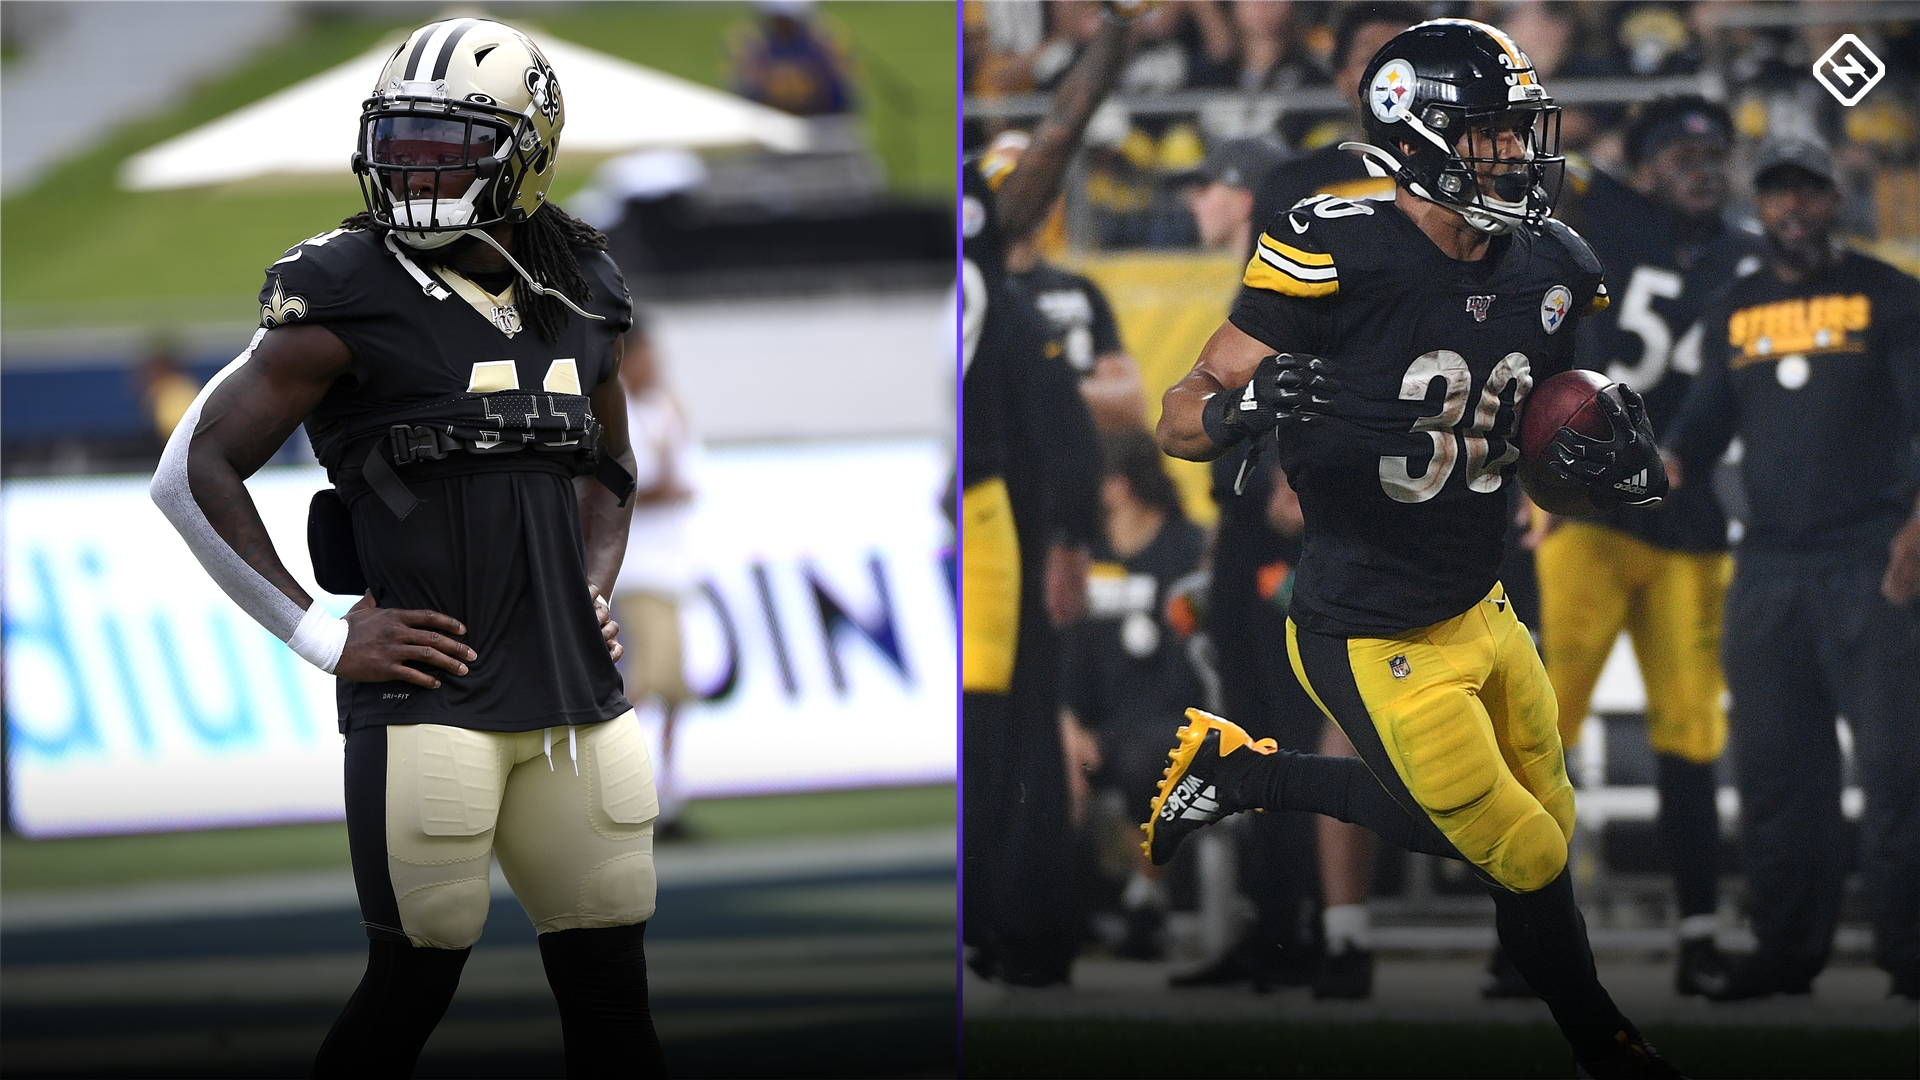 Fantasy Injury Updates: Alvin Kamara, James Conner affect Week 8 RB start 'em, sit 'em decisions